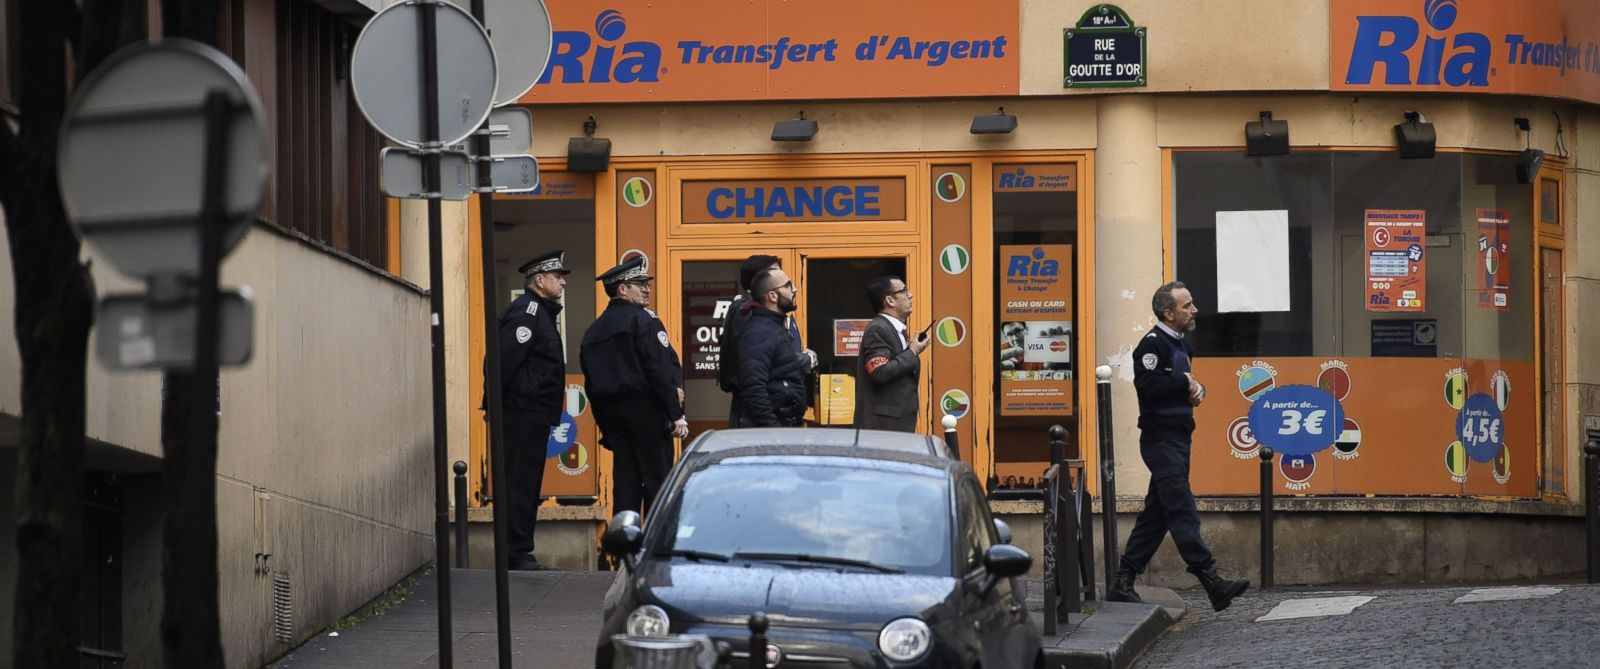 PHOTO: French police are seen near a police station in the Rue de la Goutte dOr near Barbes-Rochechouart metro station in the north of Paris, Jan. 7, 2016.